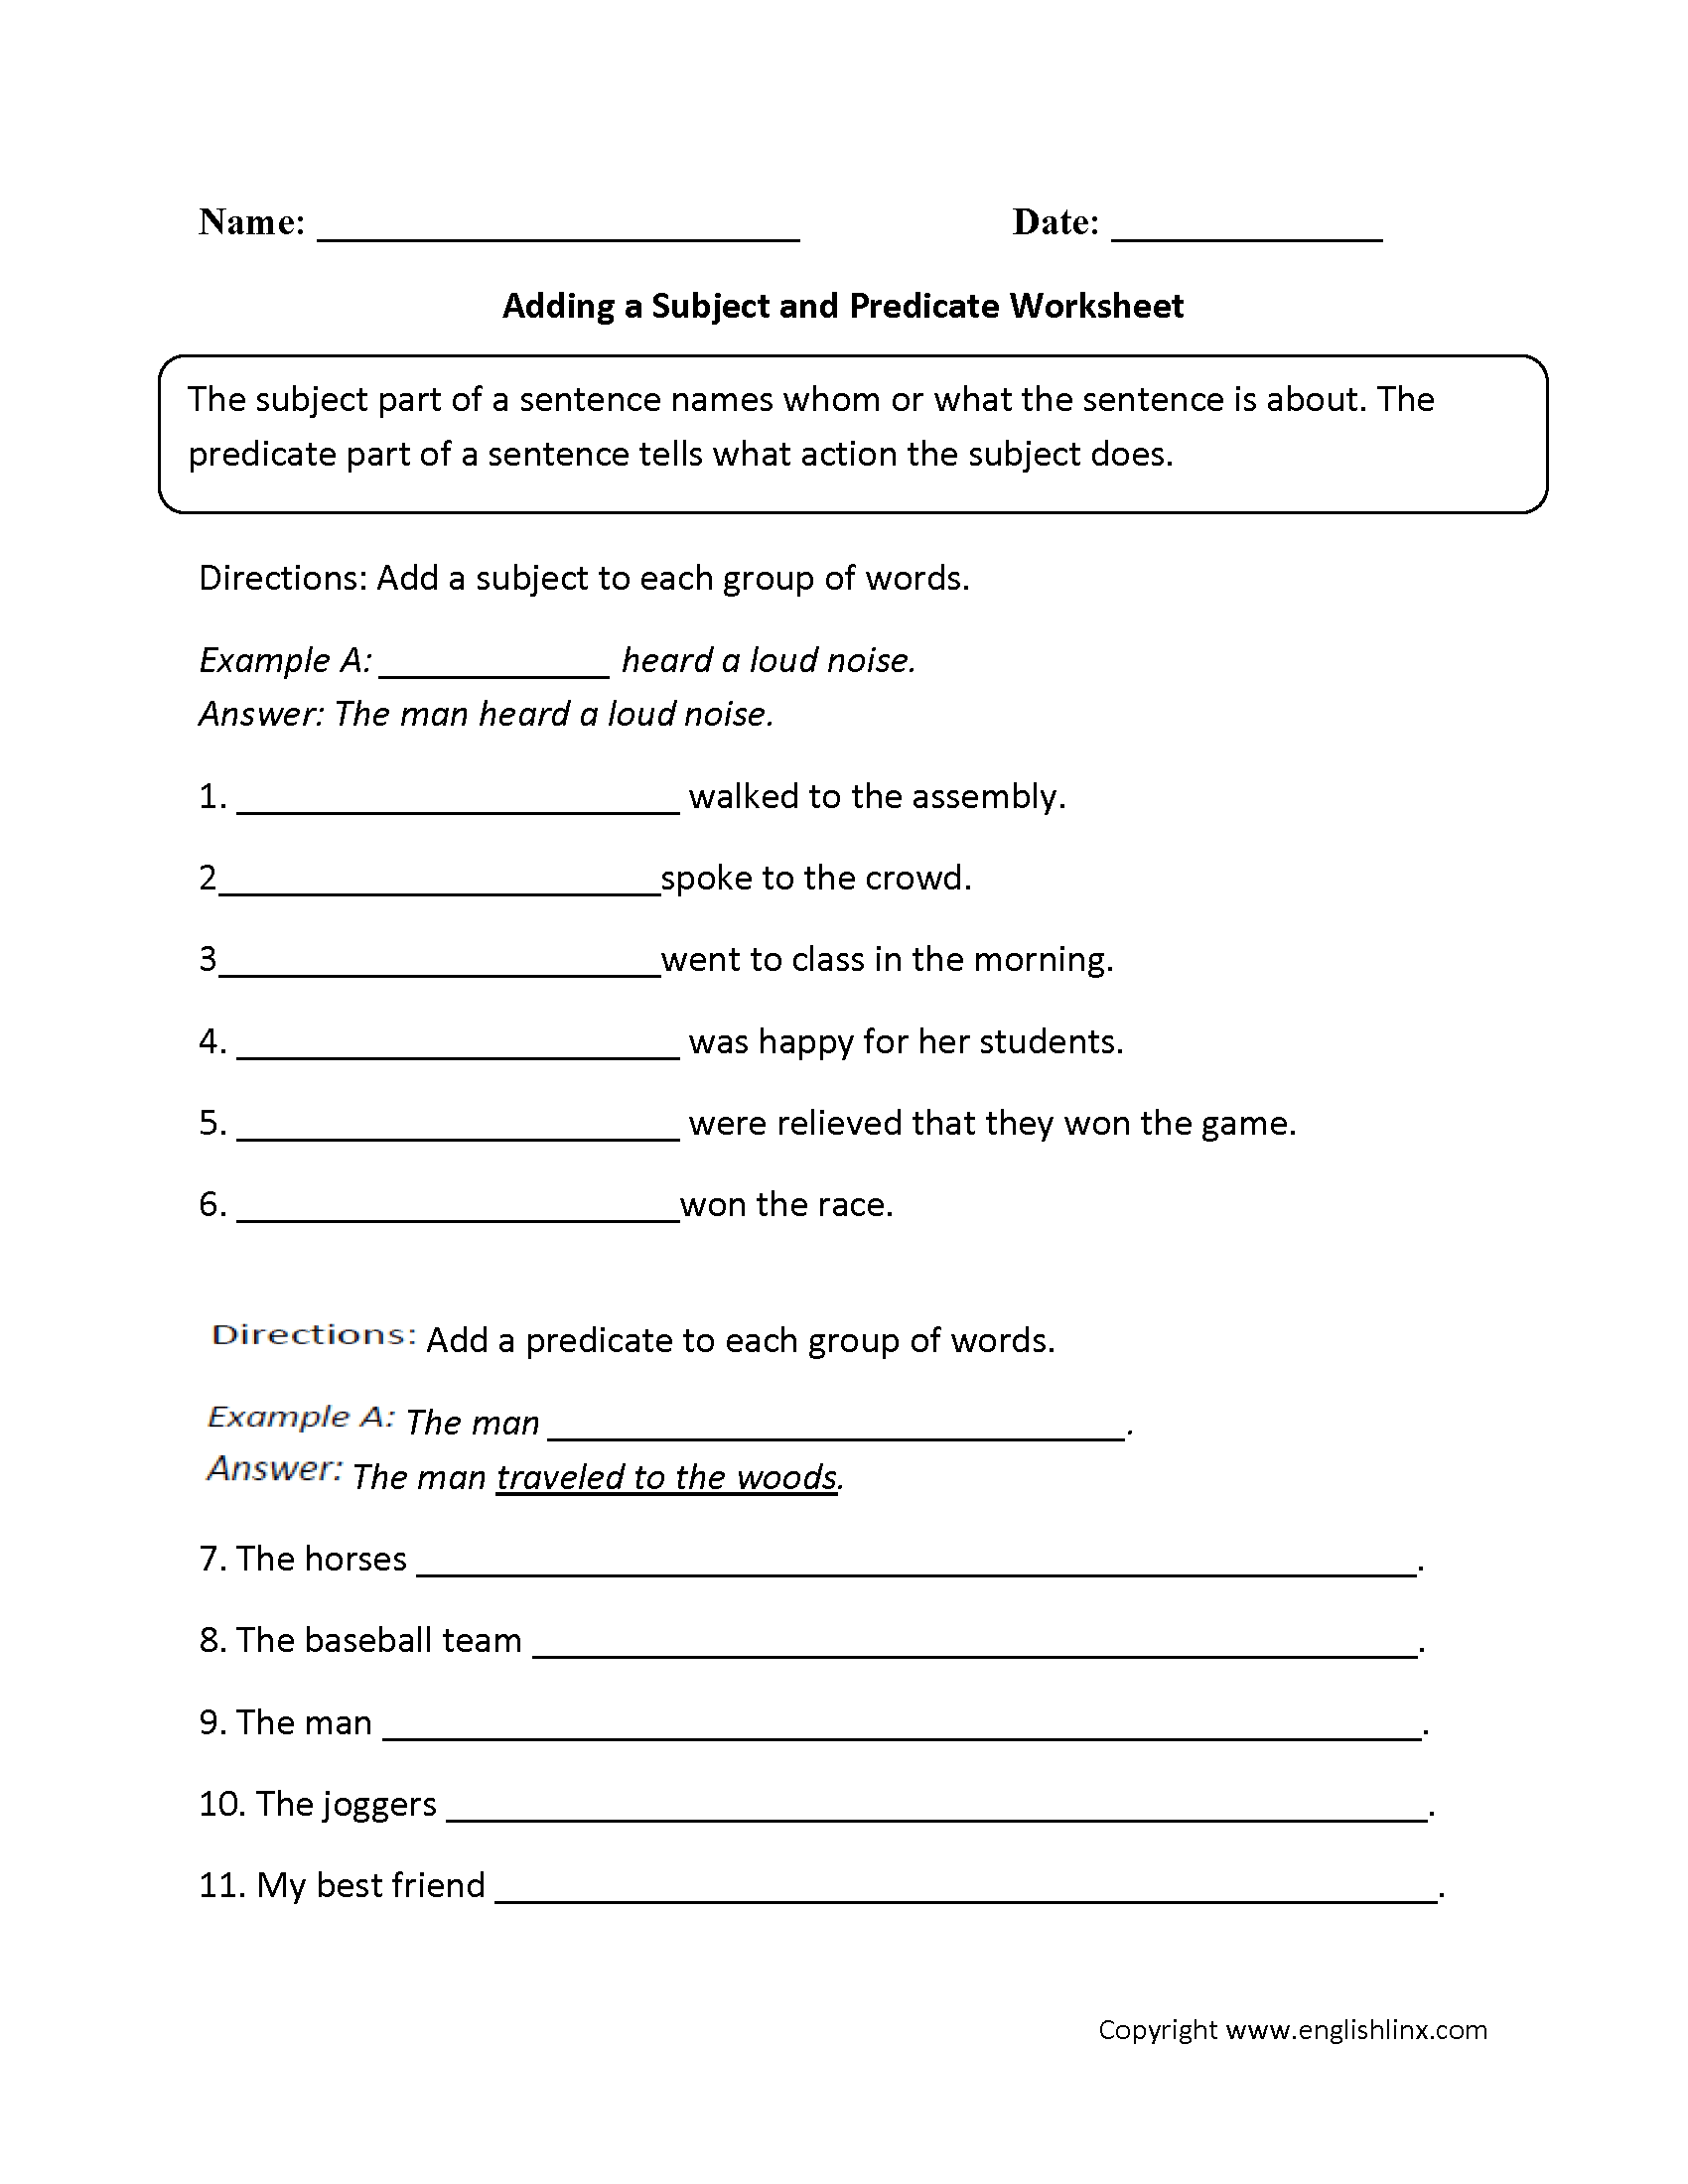 Adding A Subject And Predicate Worksheet With Images